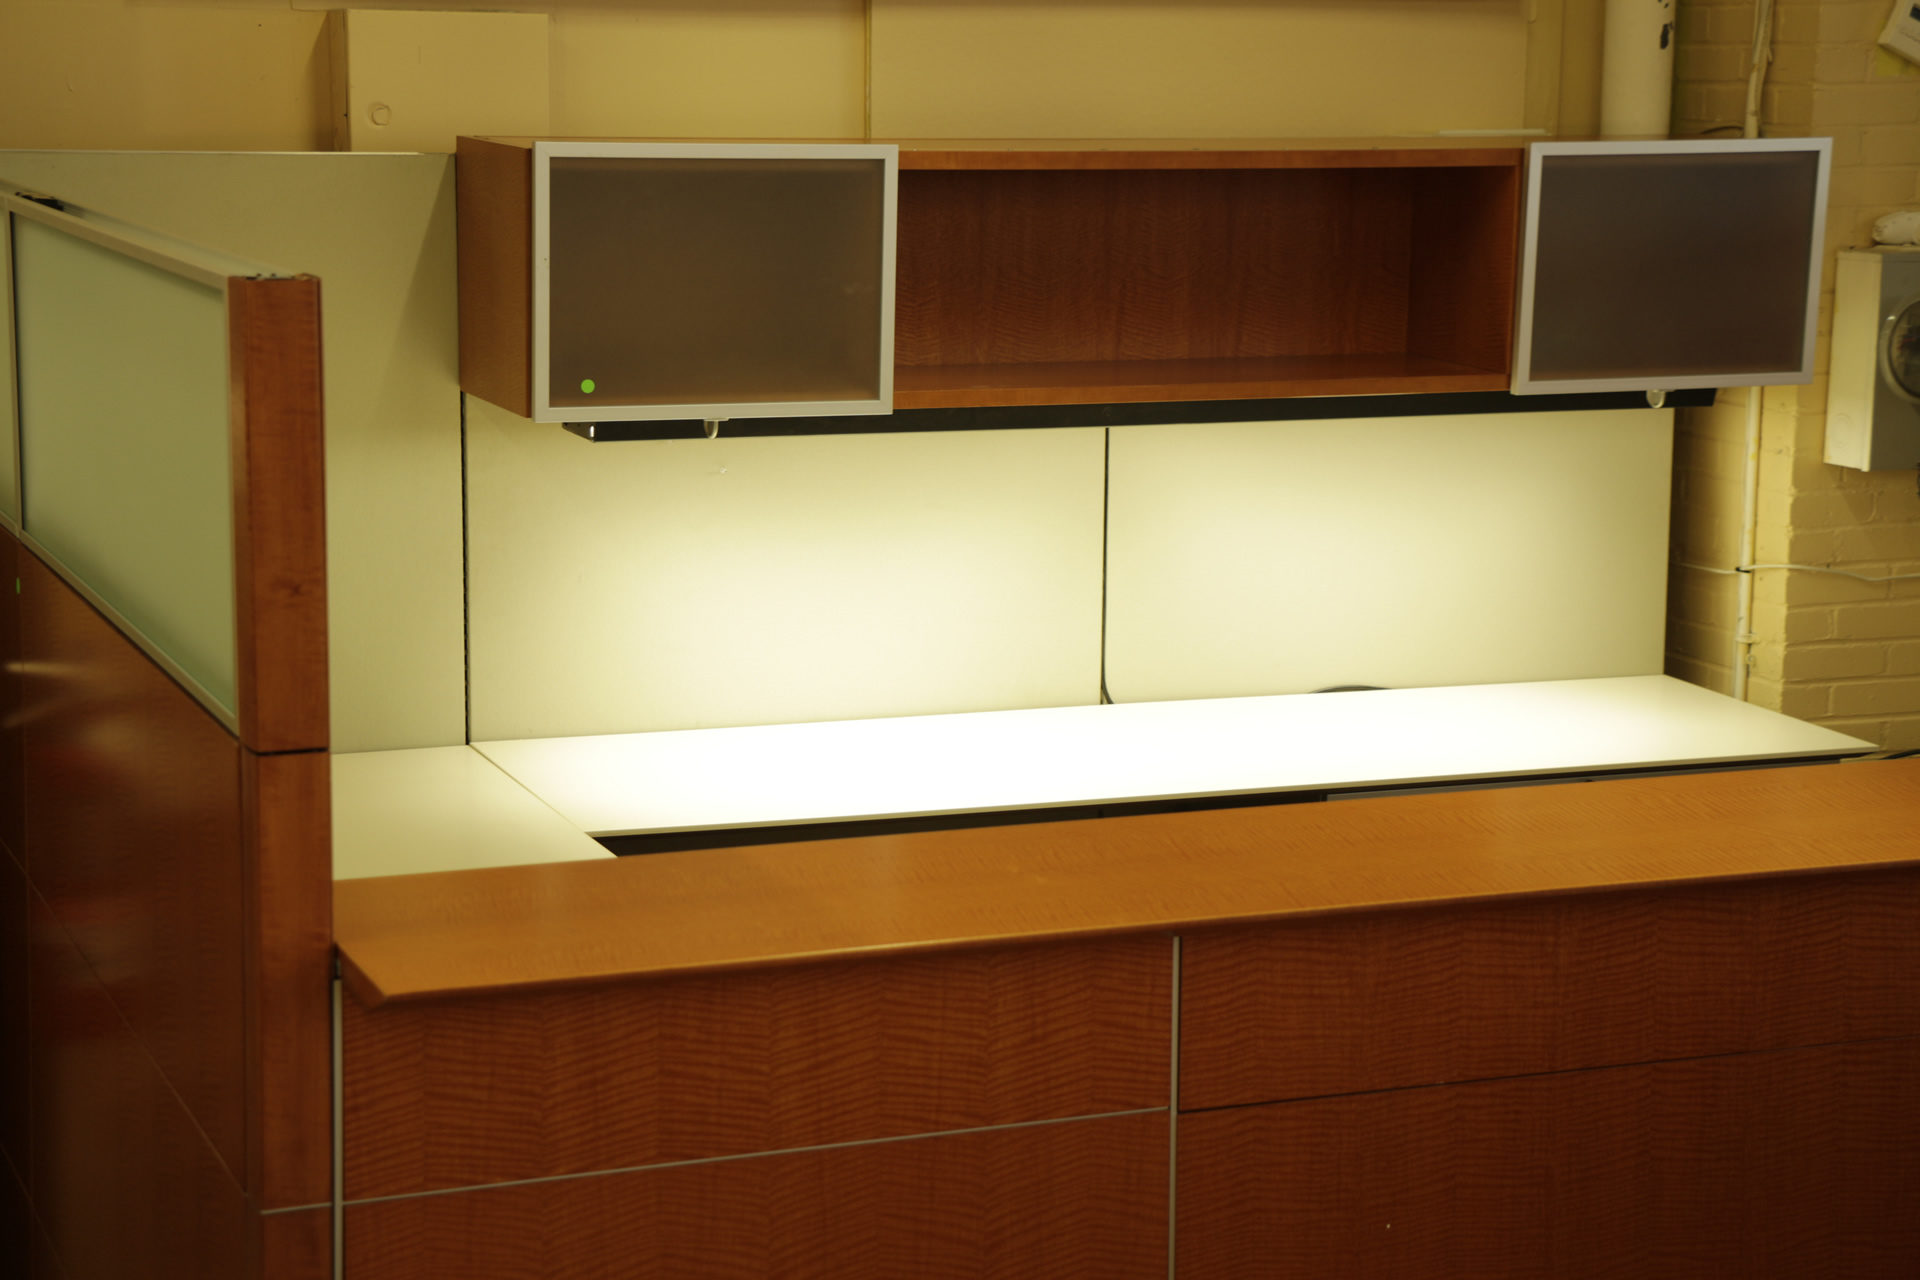 peartreeofficefurniture_peartreeofficefurniture_mg_3120.jpg